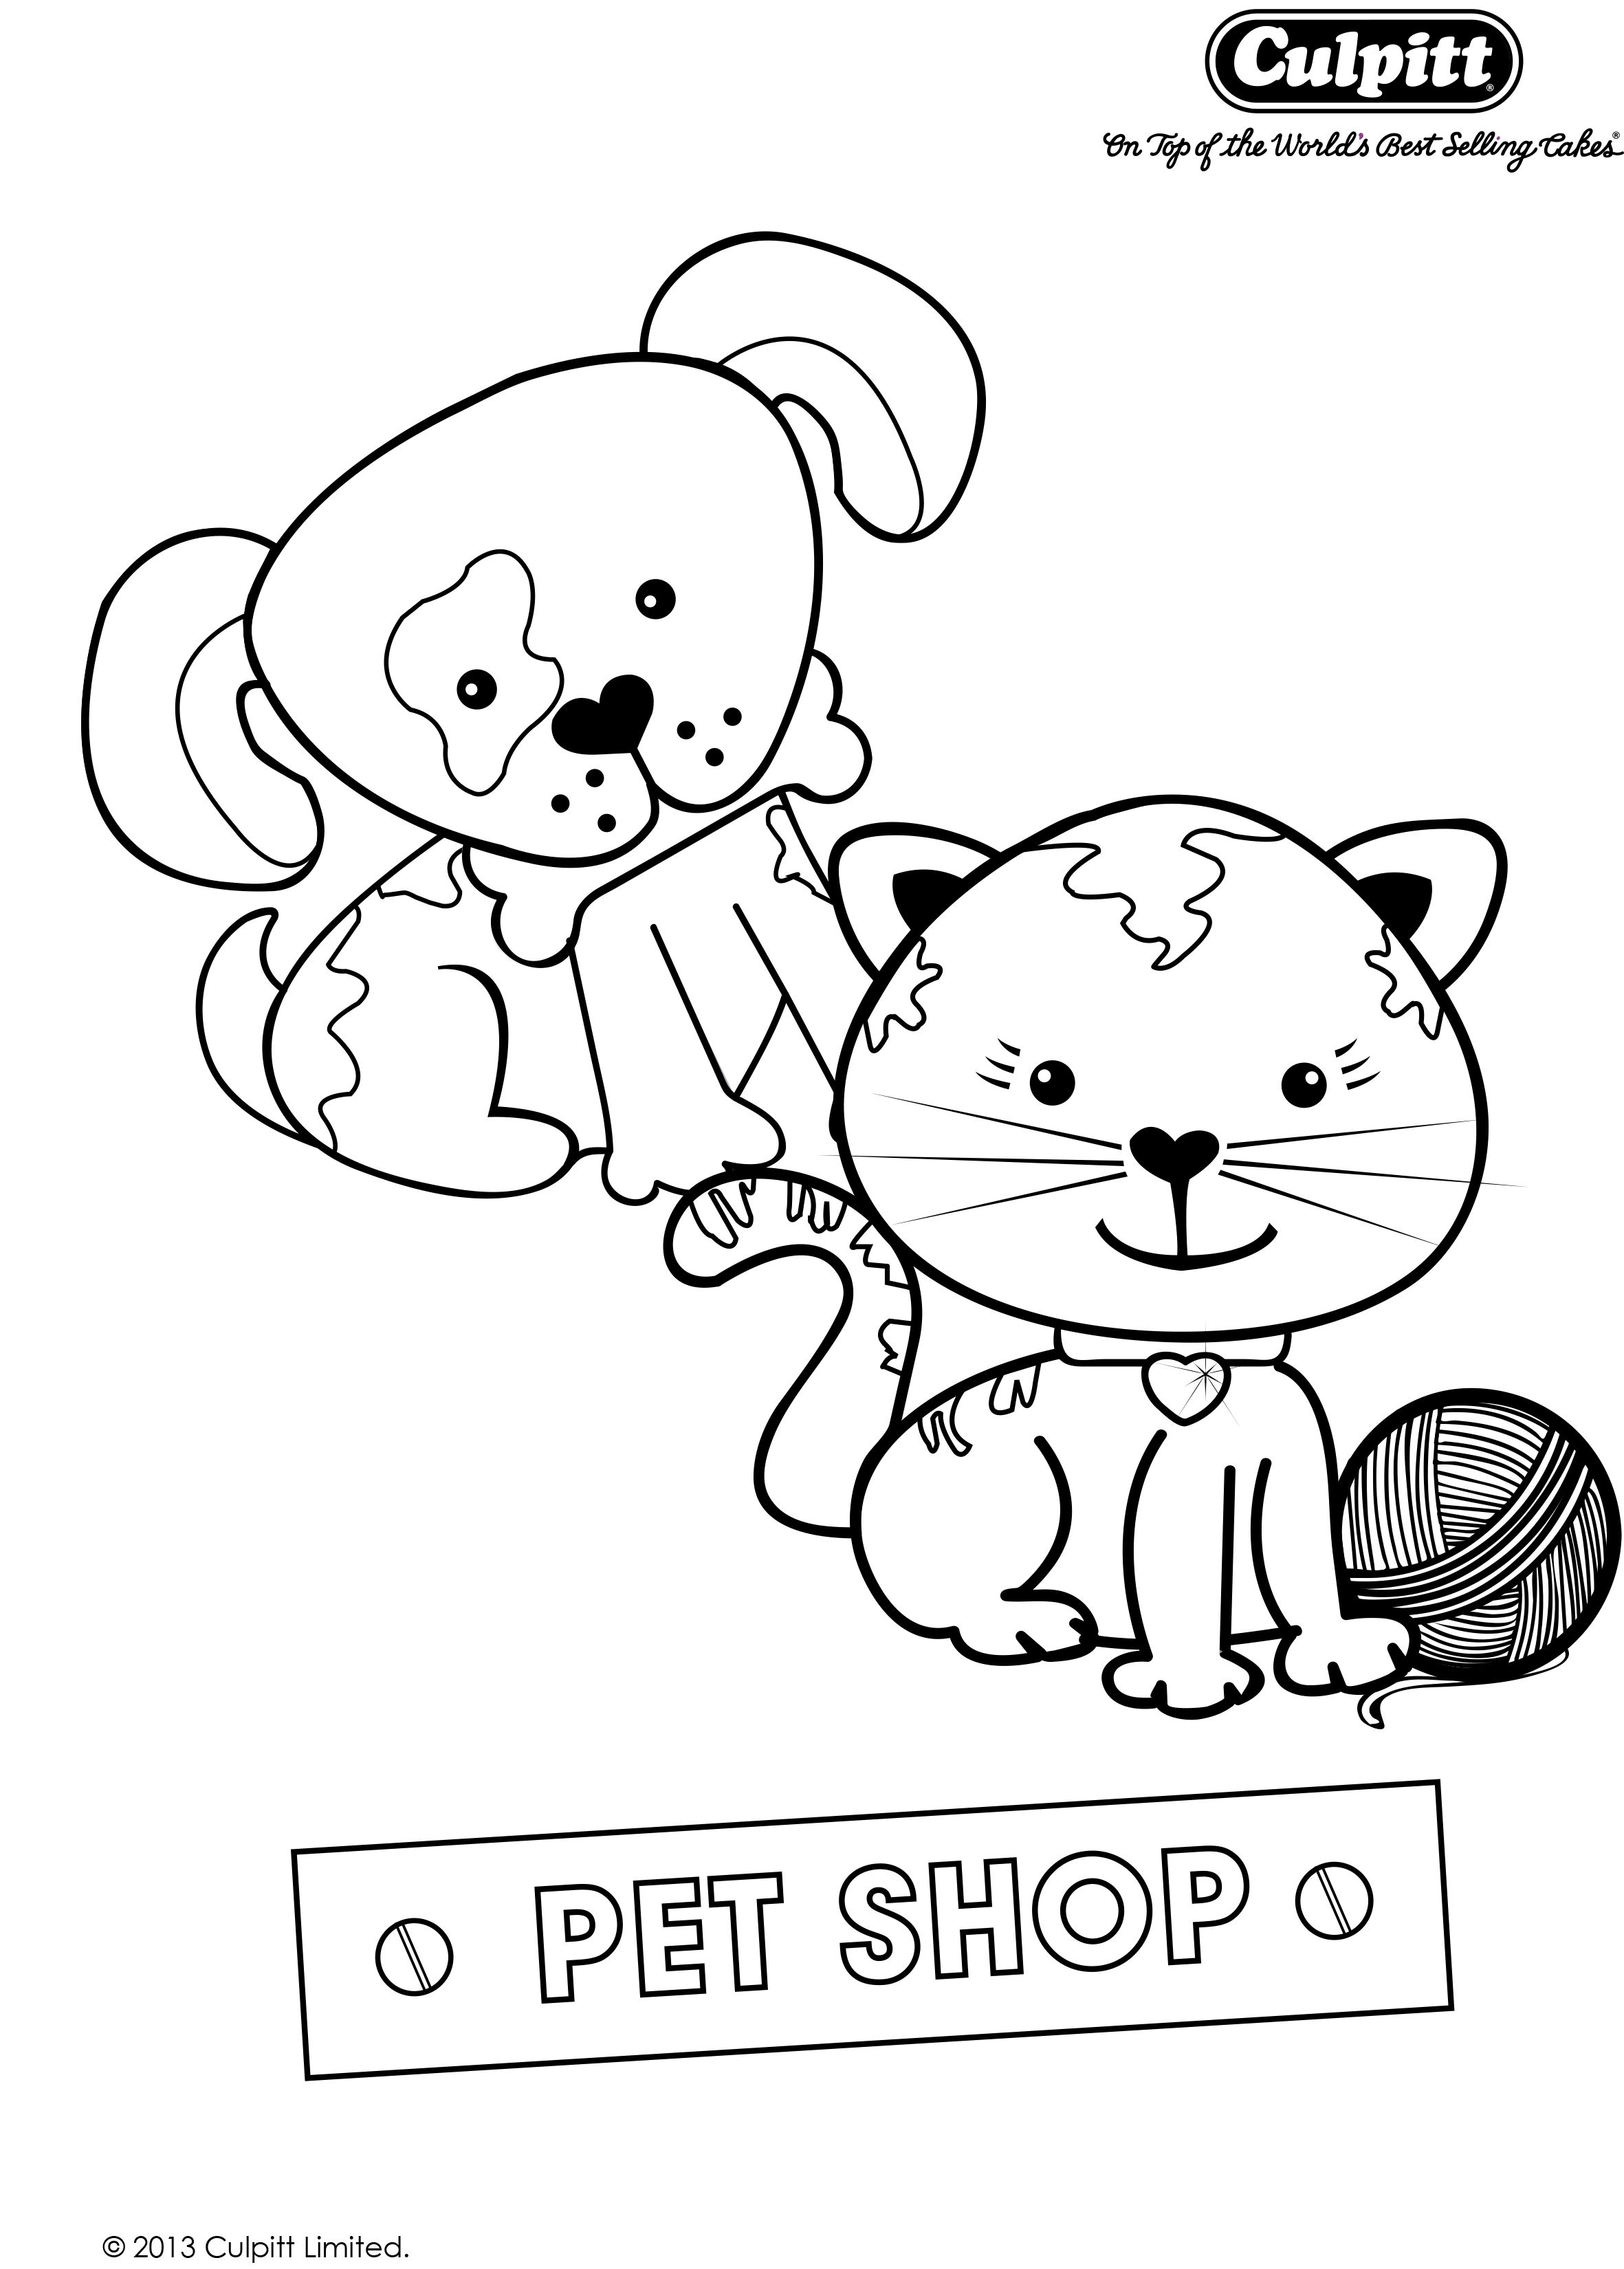 Get your free colour in Printable to match our Pet Shop party theme ...